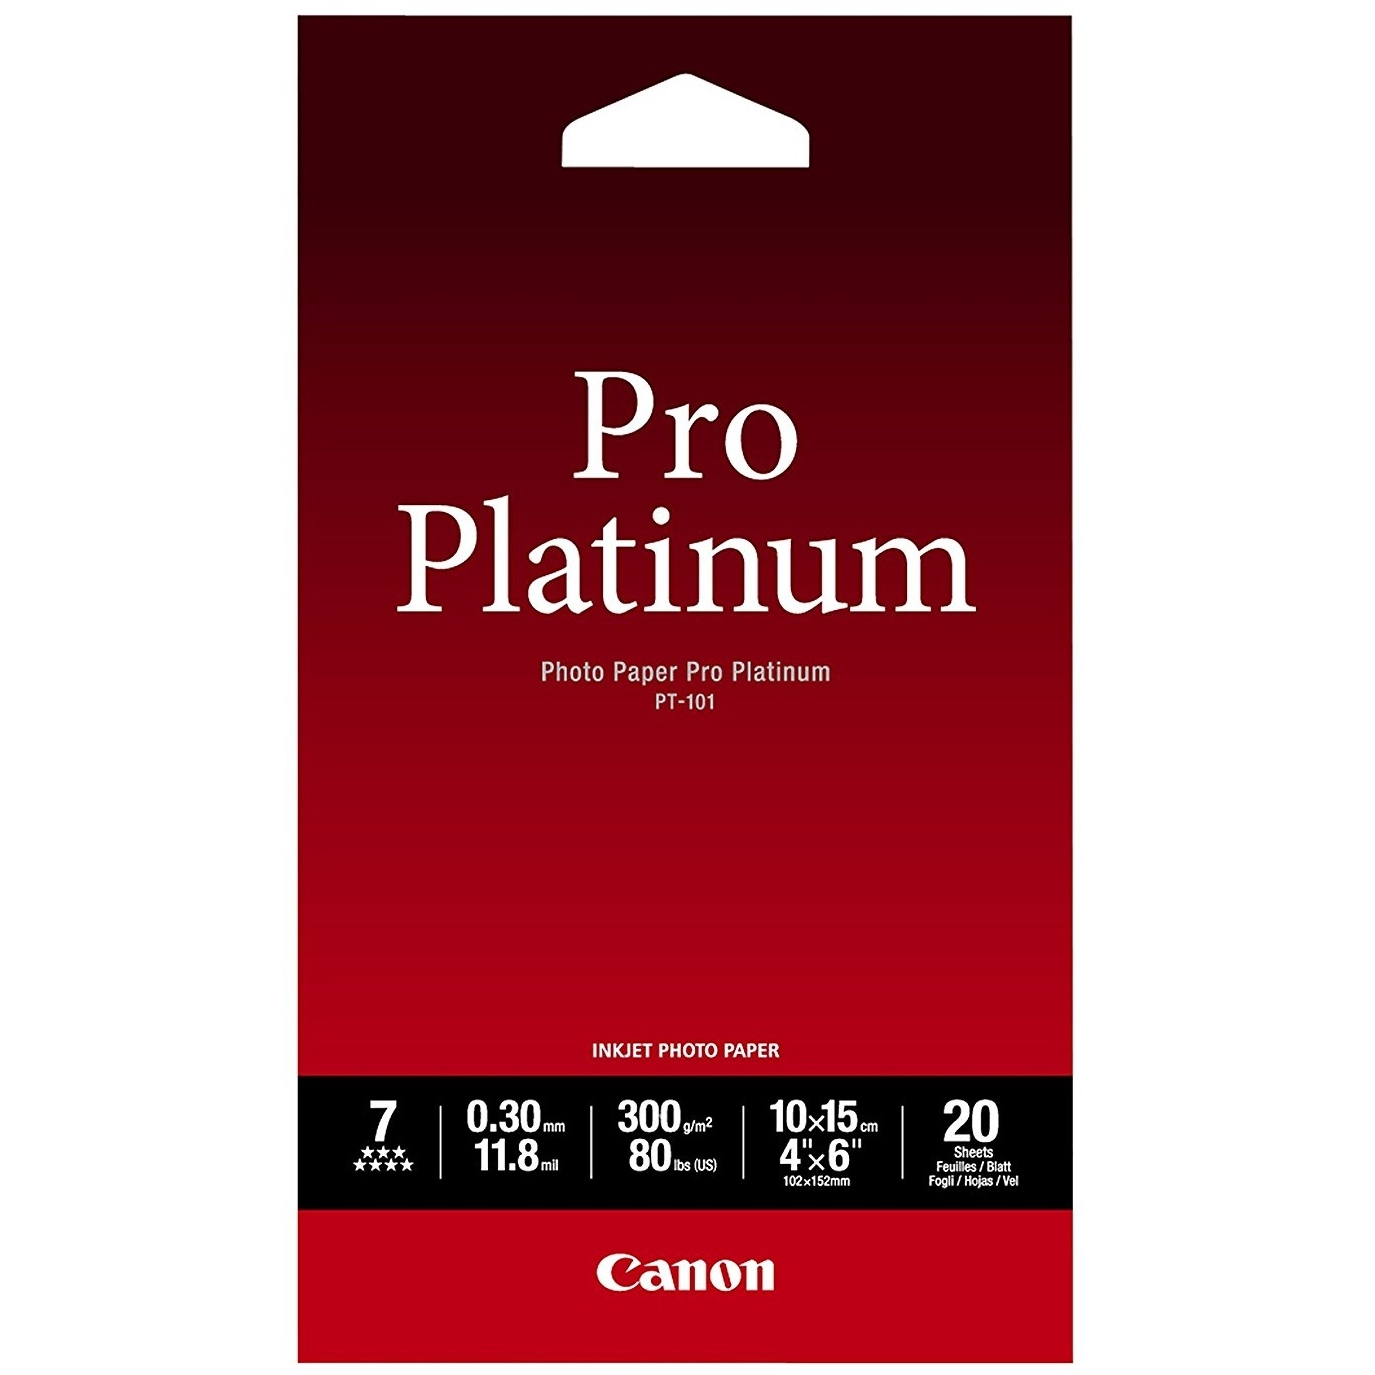 Original Canon PT-101 300gsm A6 Pro Platinum II Photo Paper - 20 Sheets (2768B013)